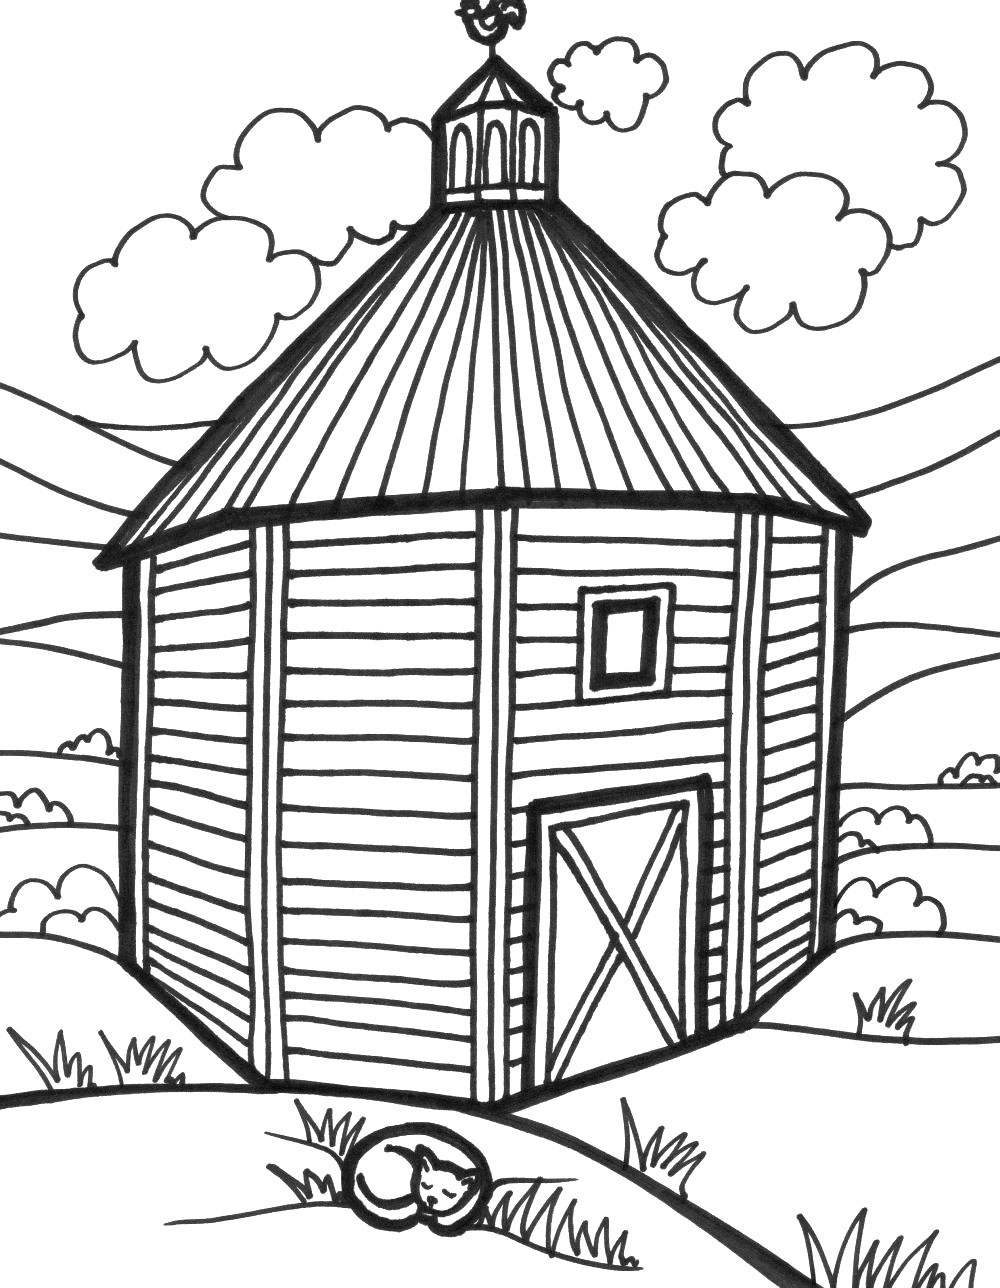 Easy Barn Drawing at GetDrawings.com   Free for personal use Easy ...